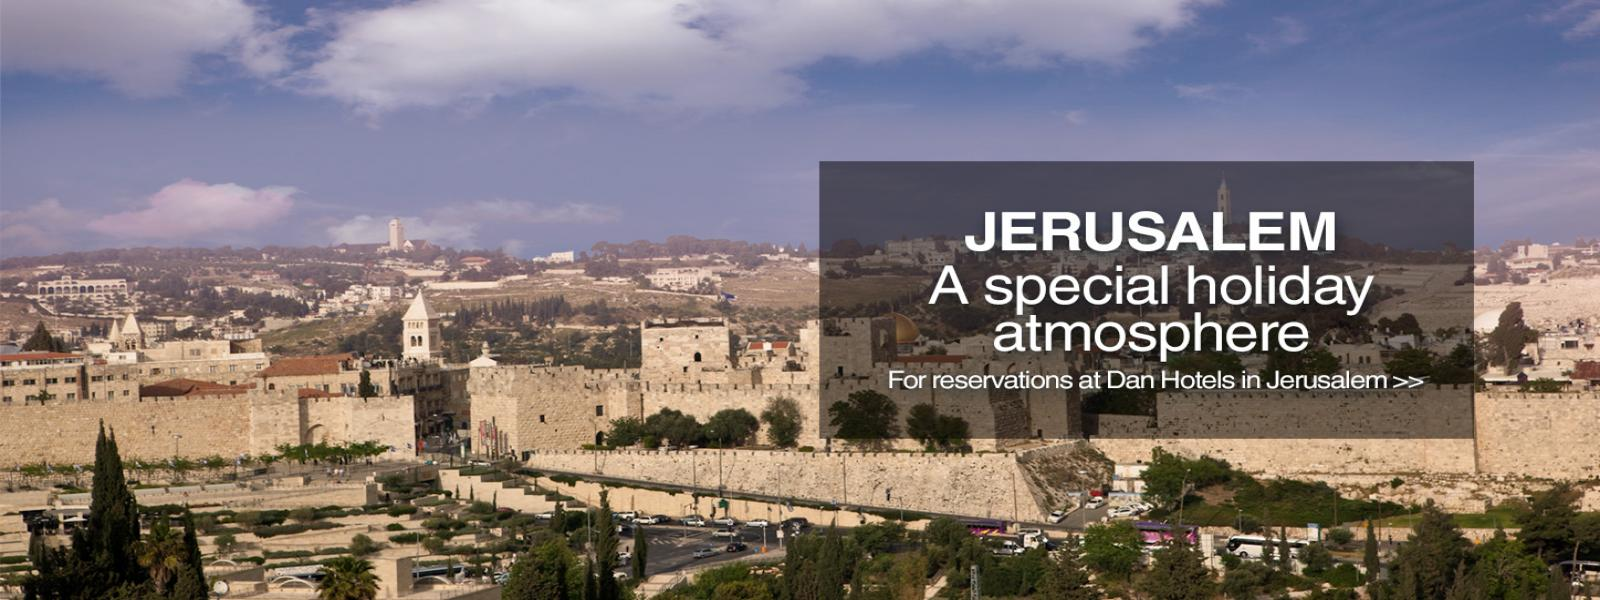 Jerusalem view picture